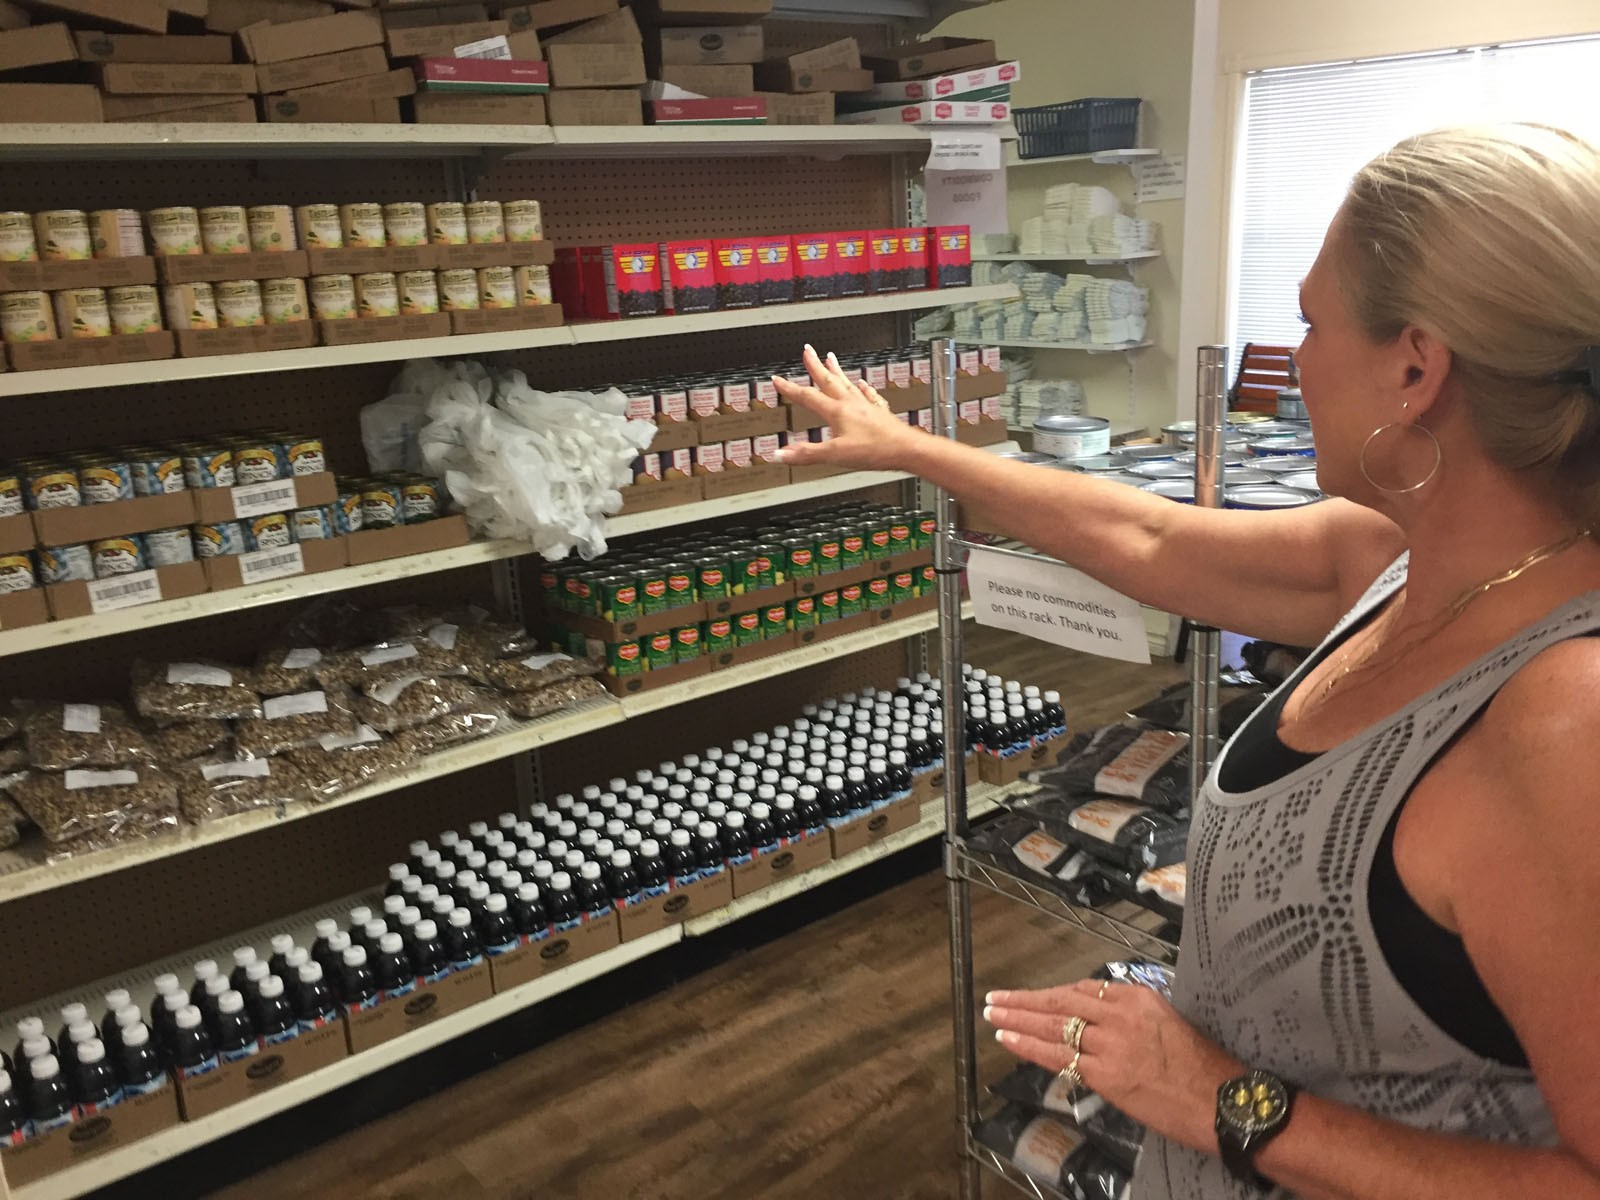 A volunteer looks over the Society of St. Vincent de Paul's food pantry shelves in Rogers, Arkansas. The food pantry is one of this year's 29 grant recipients.